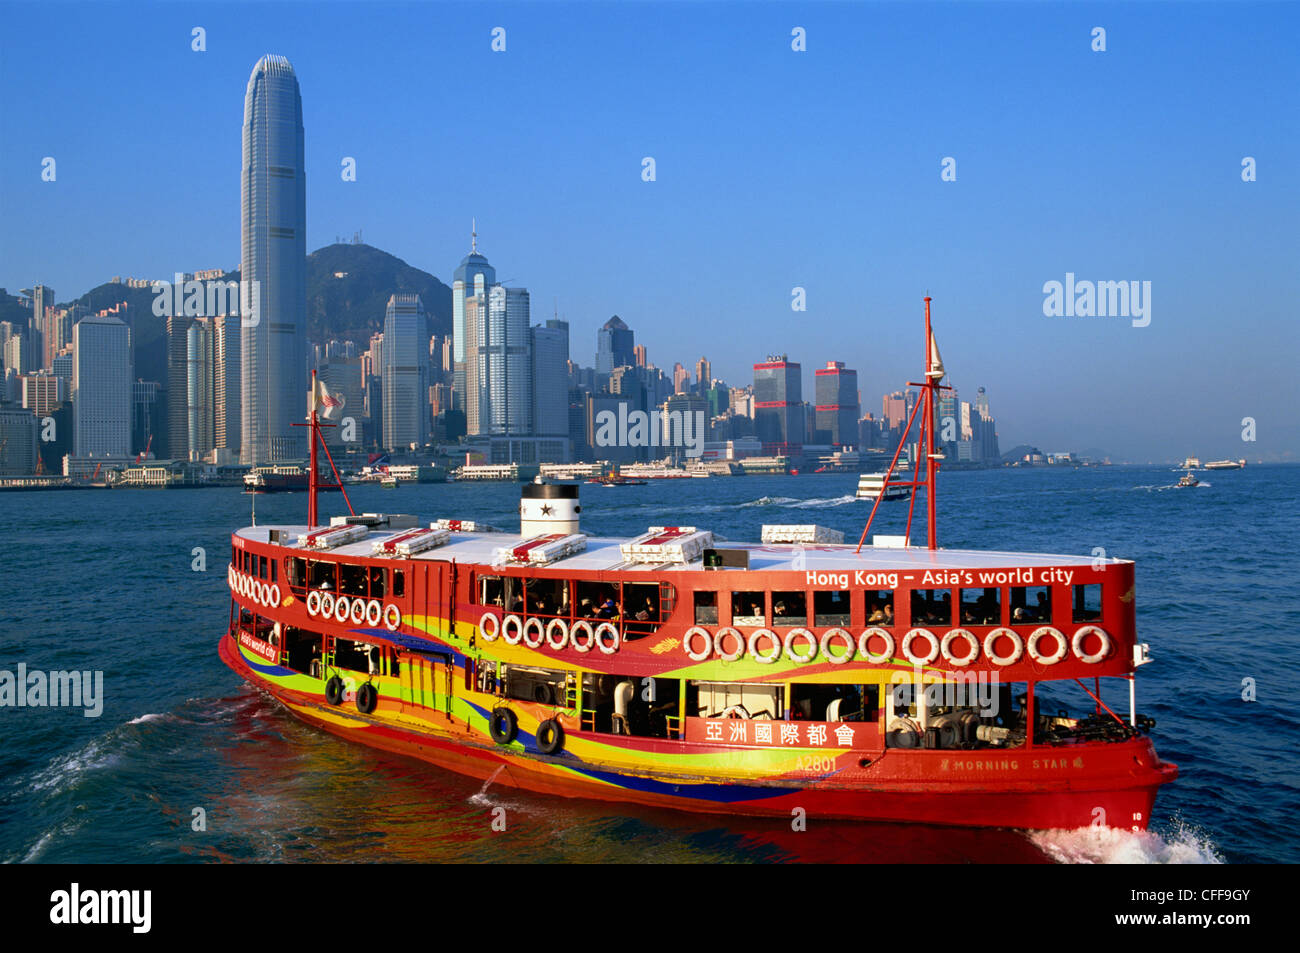 China, Hong Kong, Star Ferry and City Skyline - Stock Image